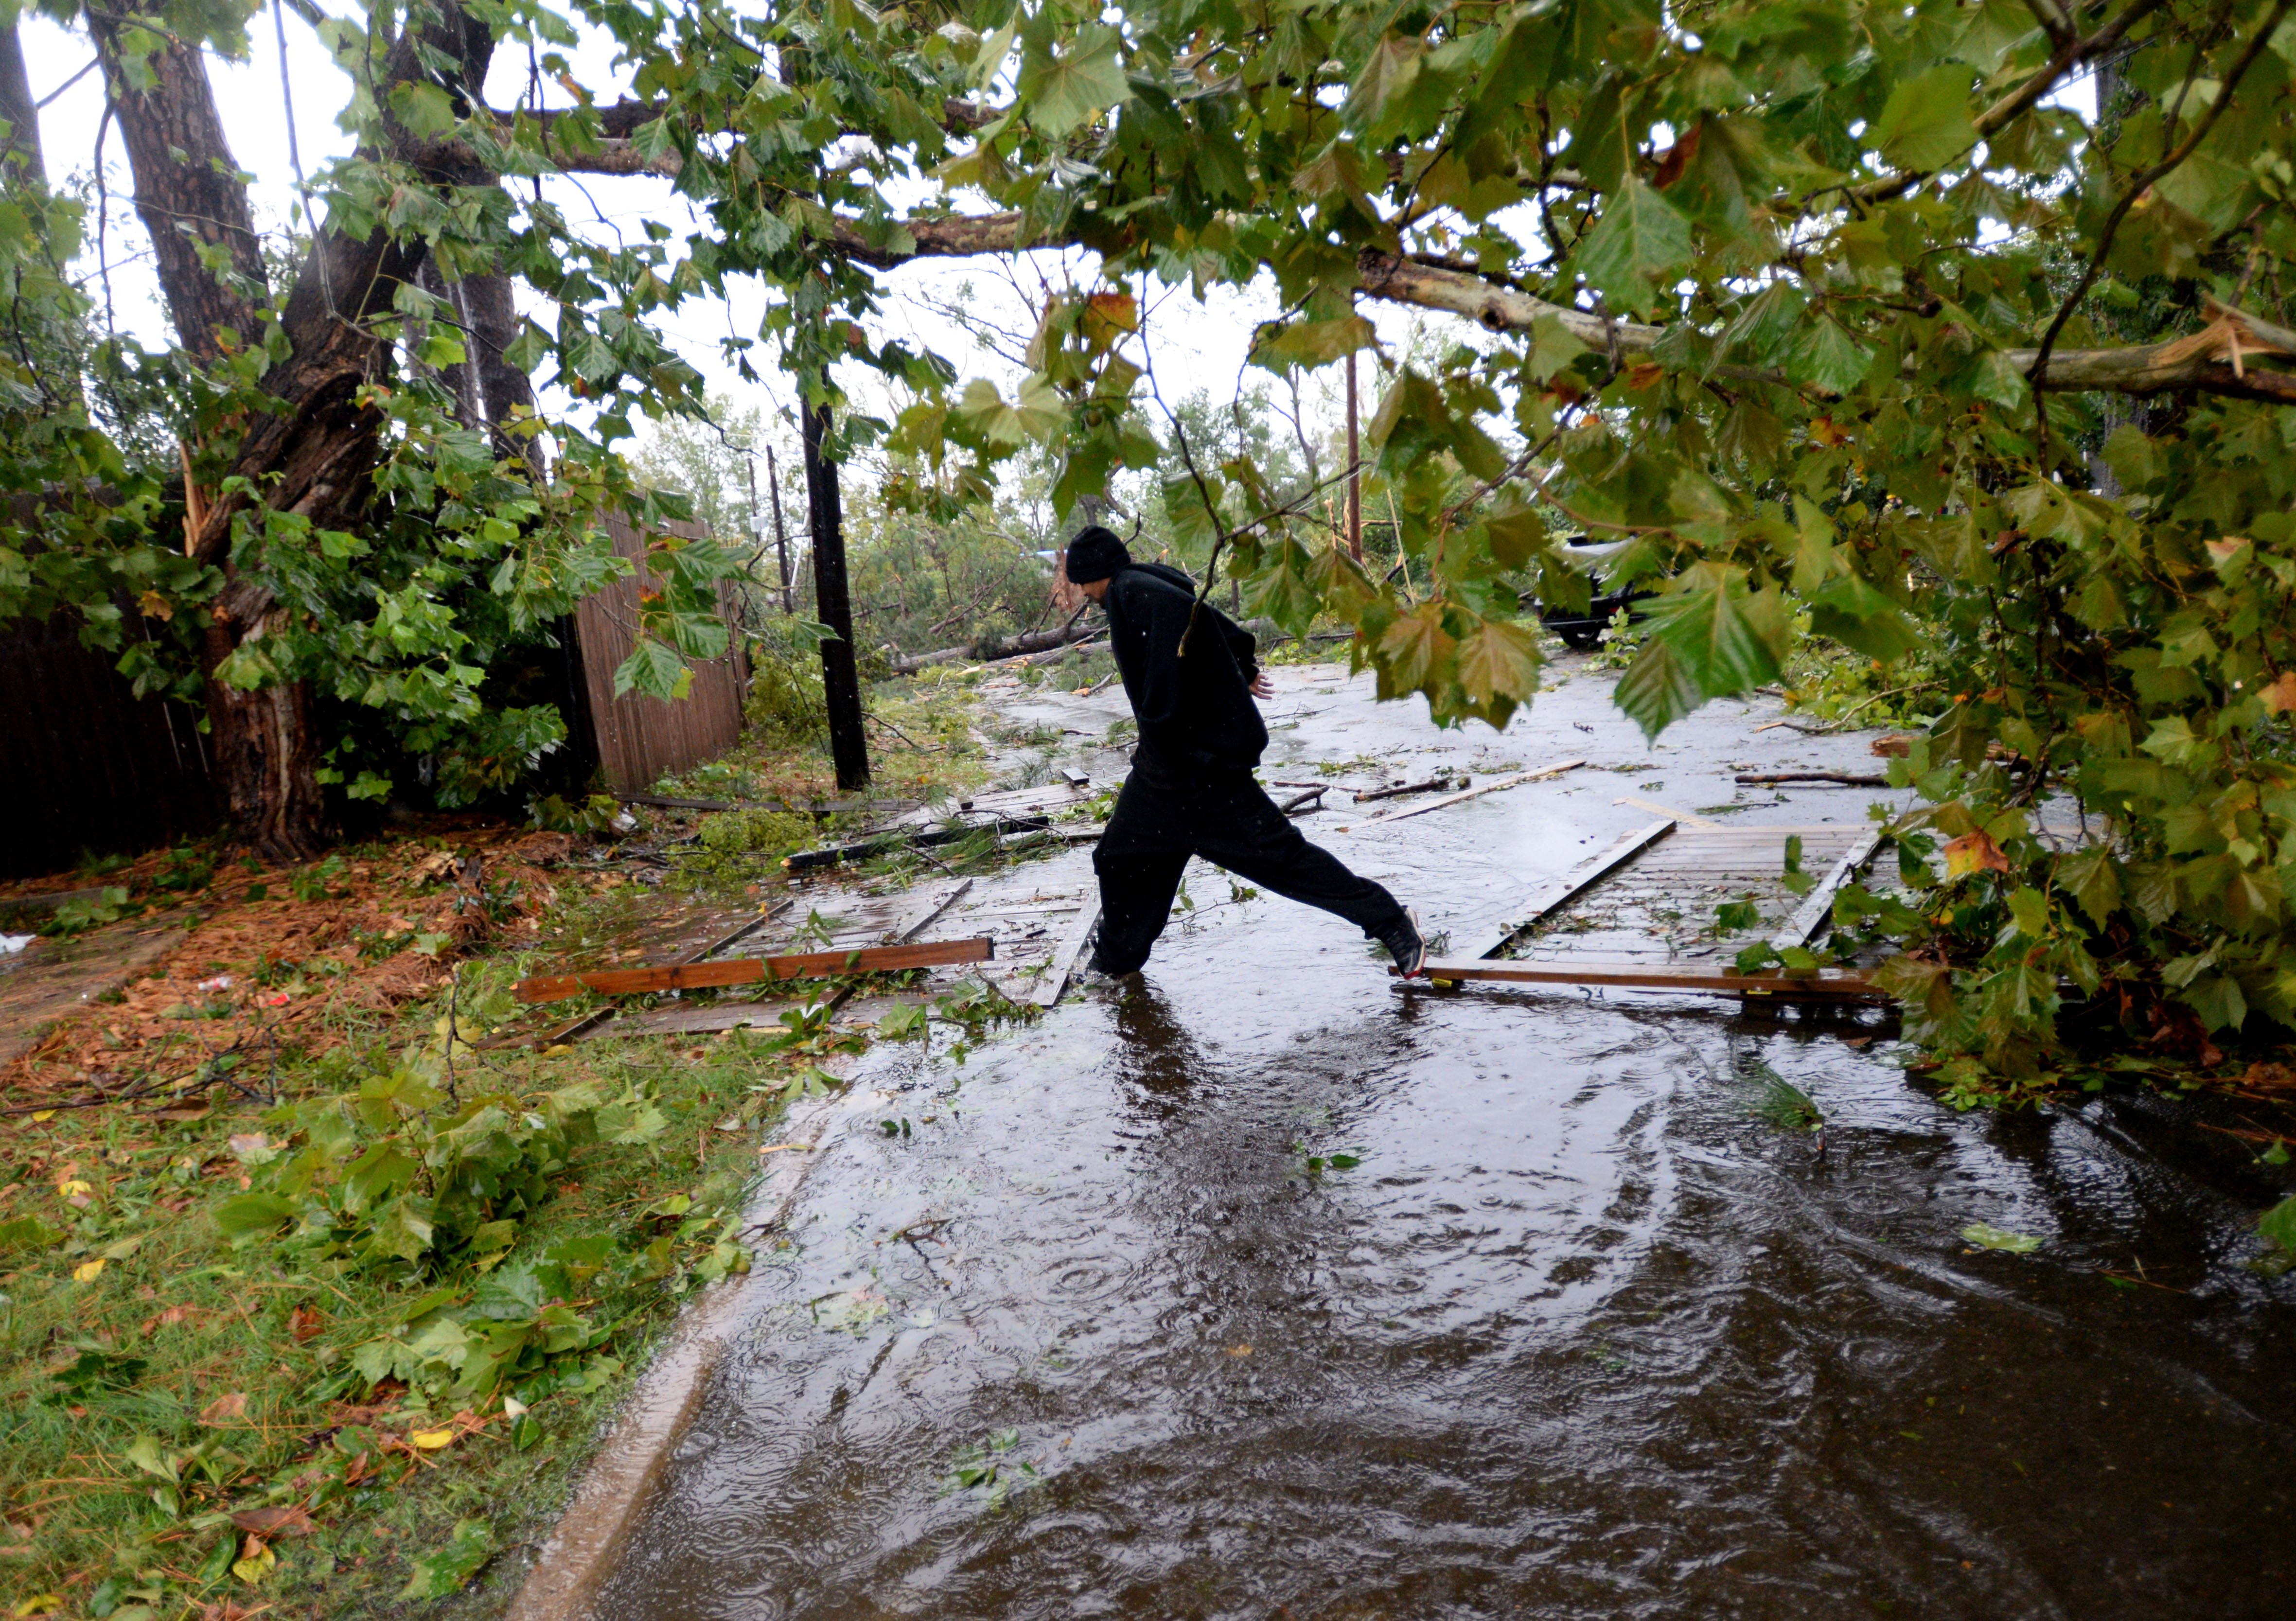 Mike Doyle jumps over a puddle while checking on a house that was damaged in the storm in Monroe, La., on Oct. 13, 2014